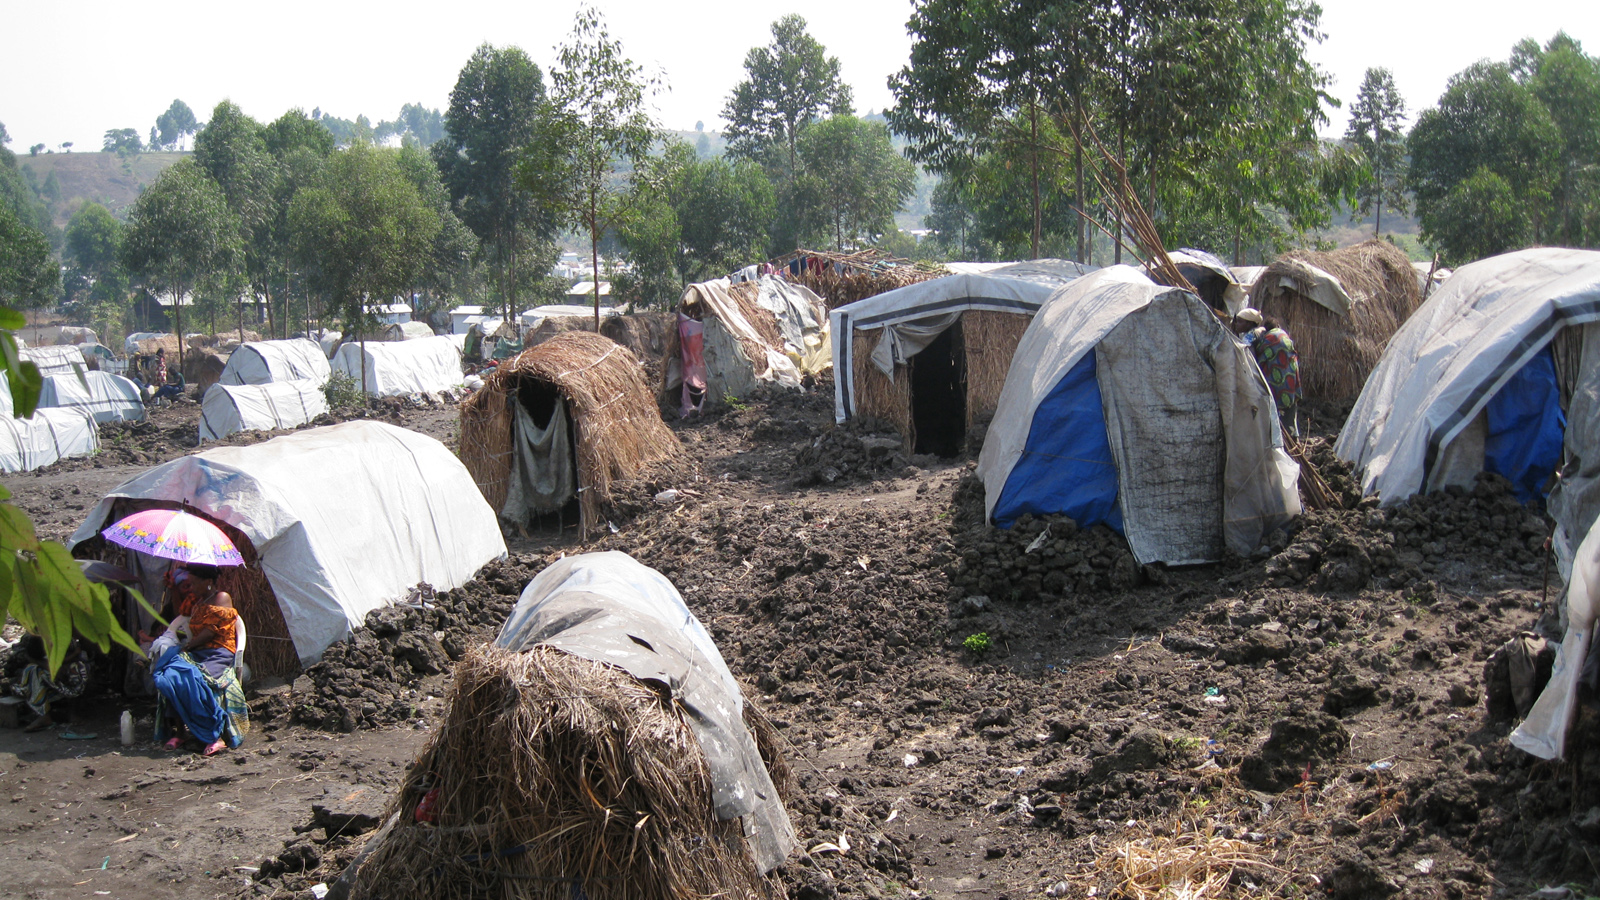 Mugunga 3, an IDP camp in the outskirts of Congolese eastern town of Goma